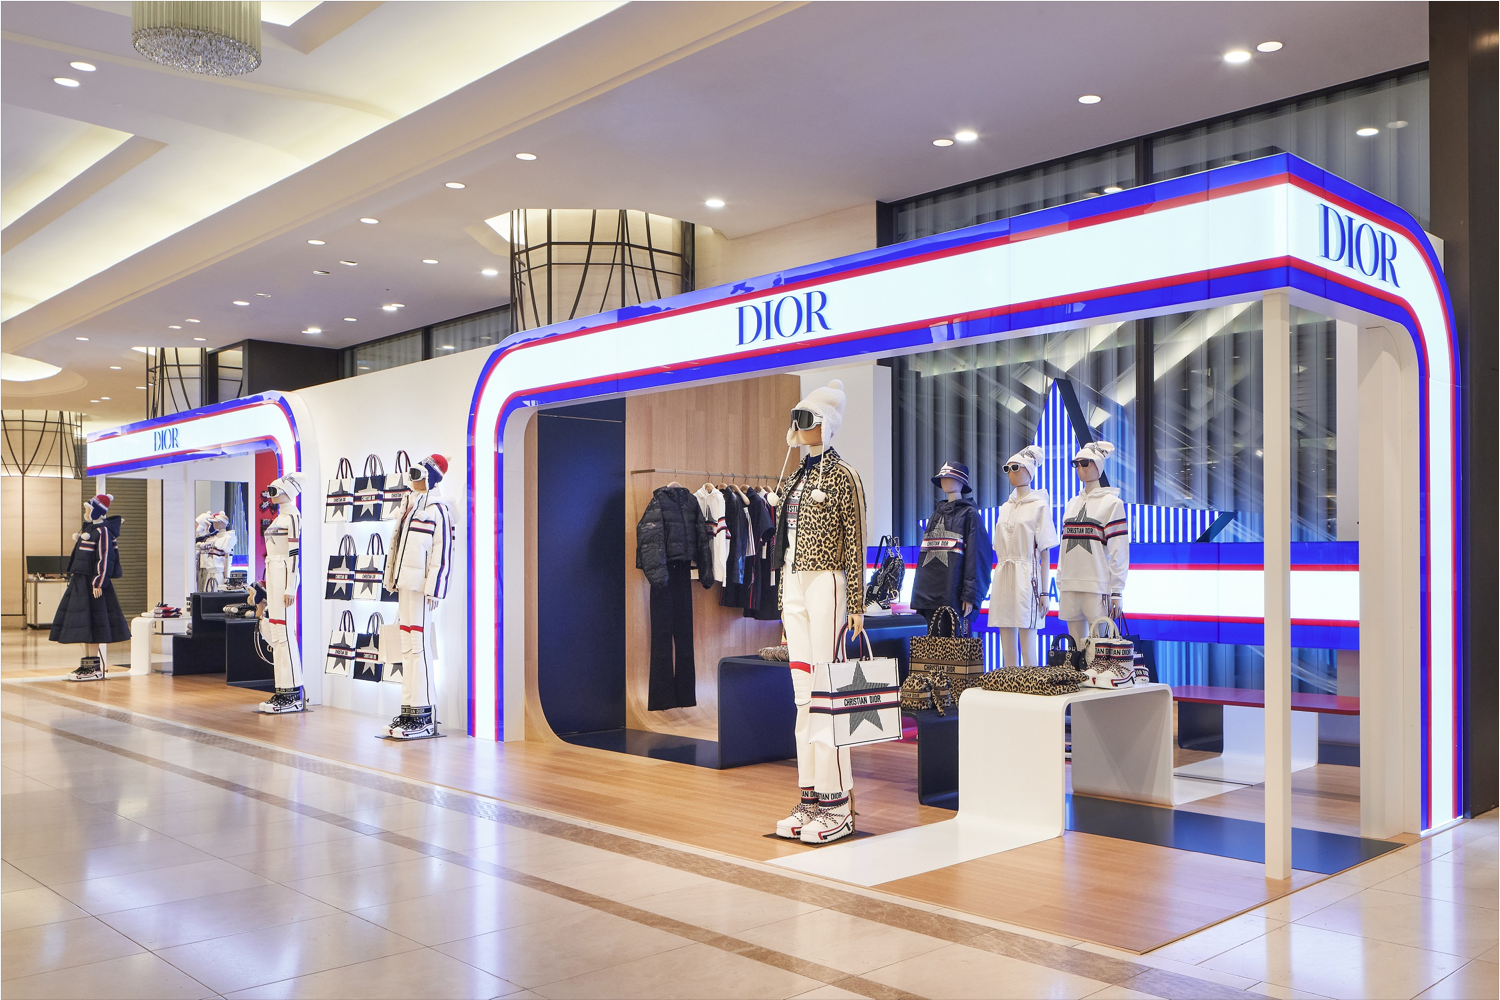 DIOR opens #DiorAlps pop-up in Osaka